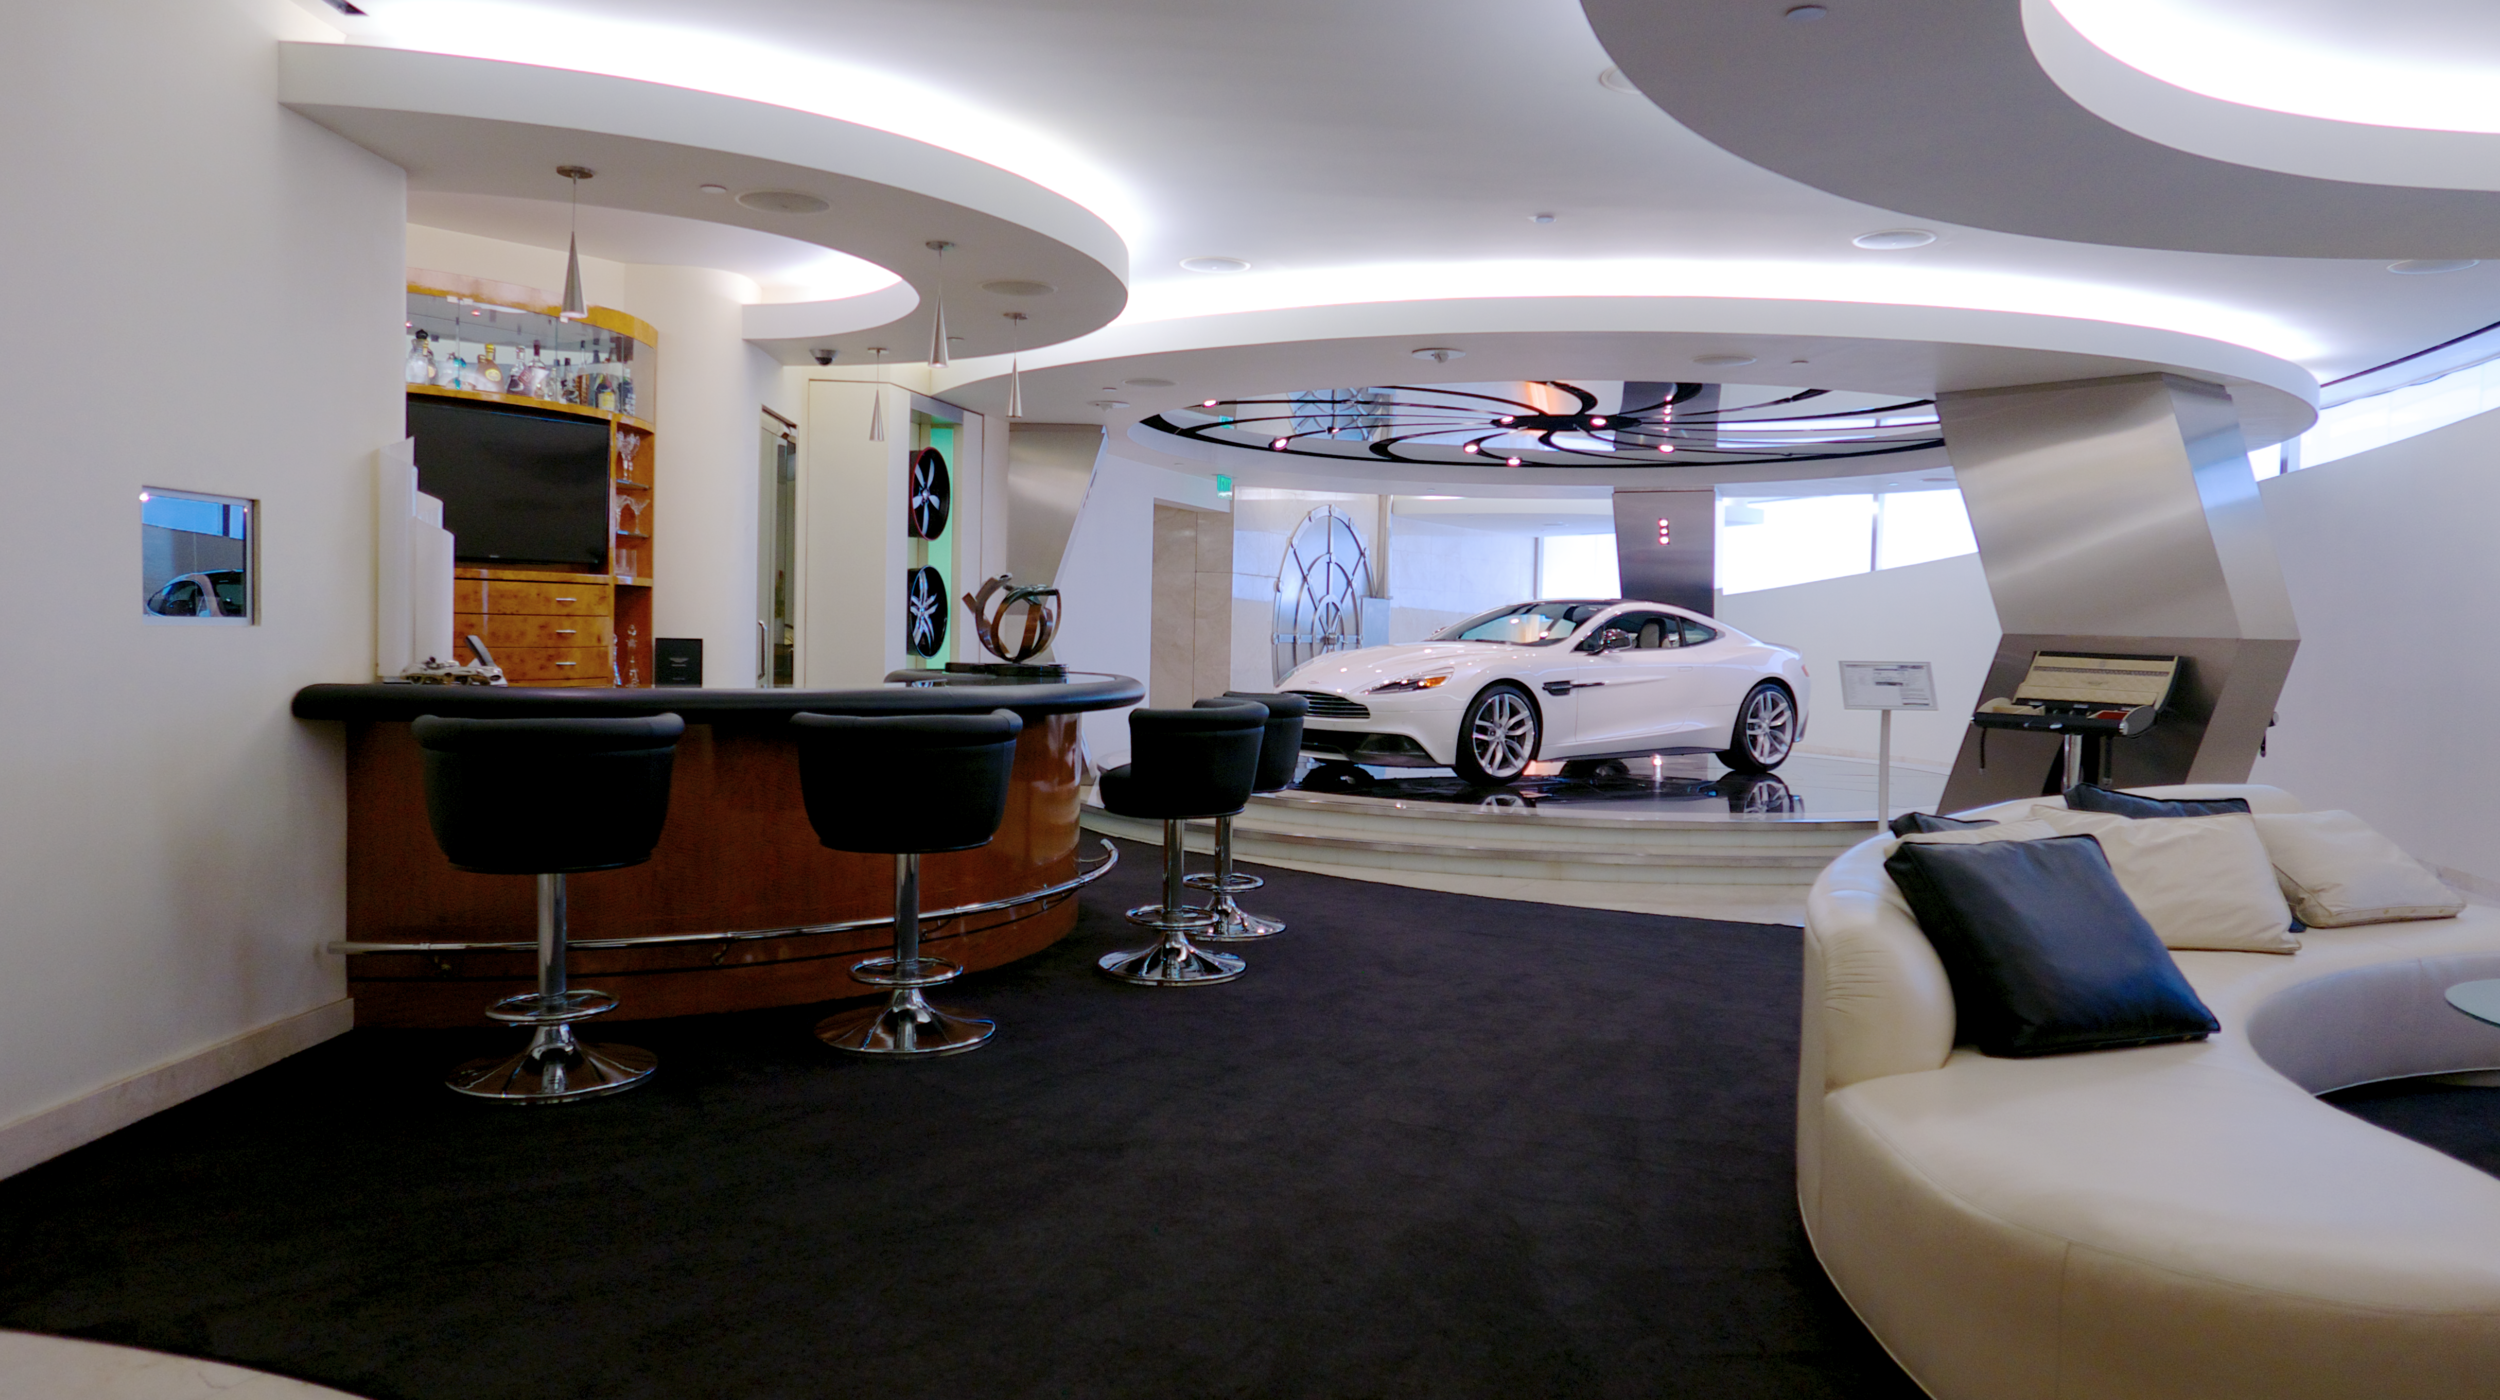 Galpin's  ClubAston  is a bond inspired private, immersive experience controlled by thumb reader and airlock.